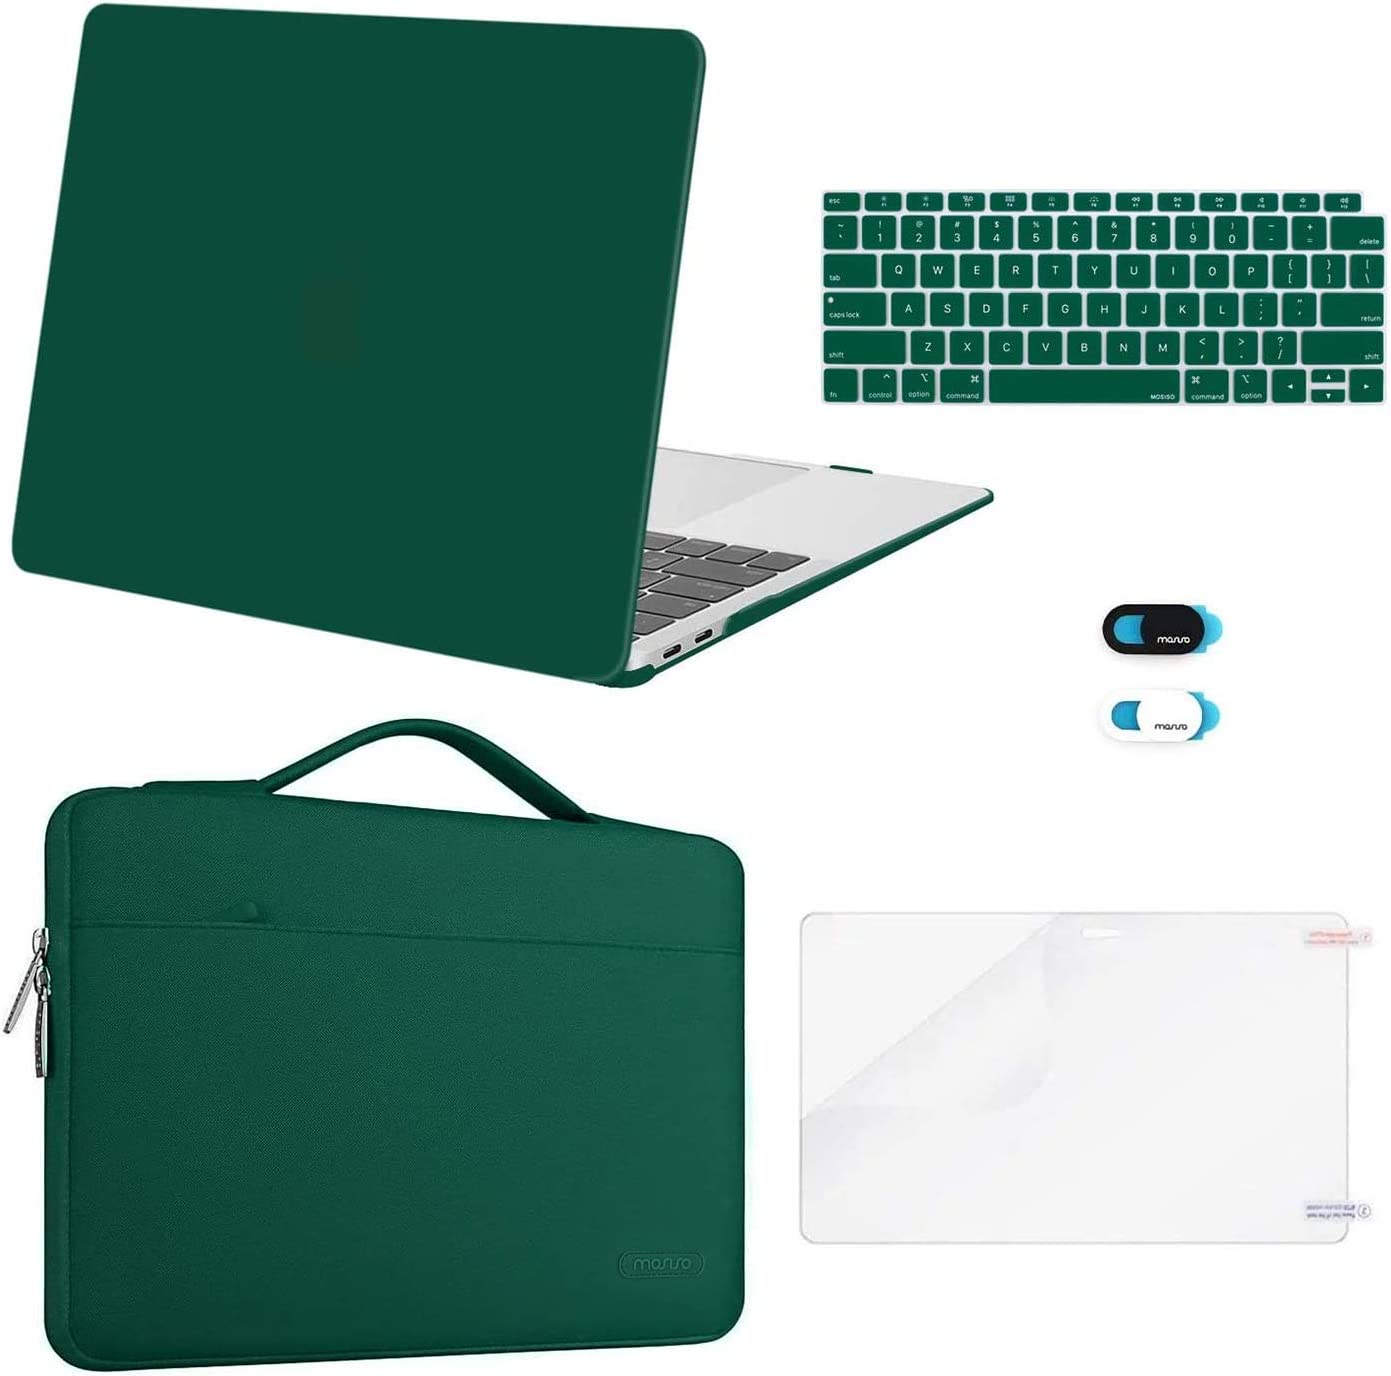 MOSISO MacBook Air 13 inch Case 2020 2019 2018 Release A2337 M1 A2179 A1932,Plastic Hard Case&Bag&Keyboard Skin&Webcam Cover&Screen Protector Compatible with MacBook Air 13 inch Retina, Peacock Green